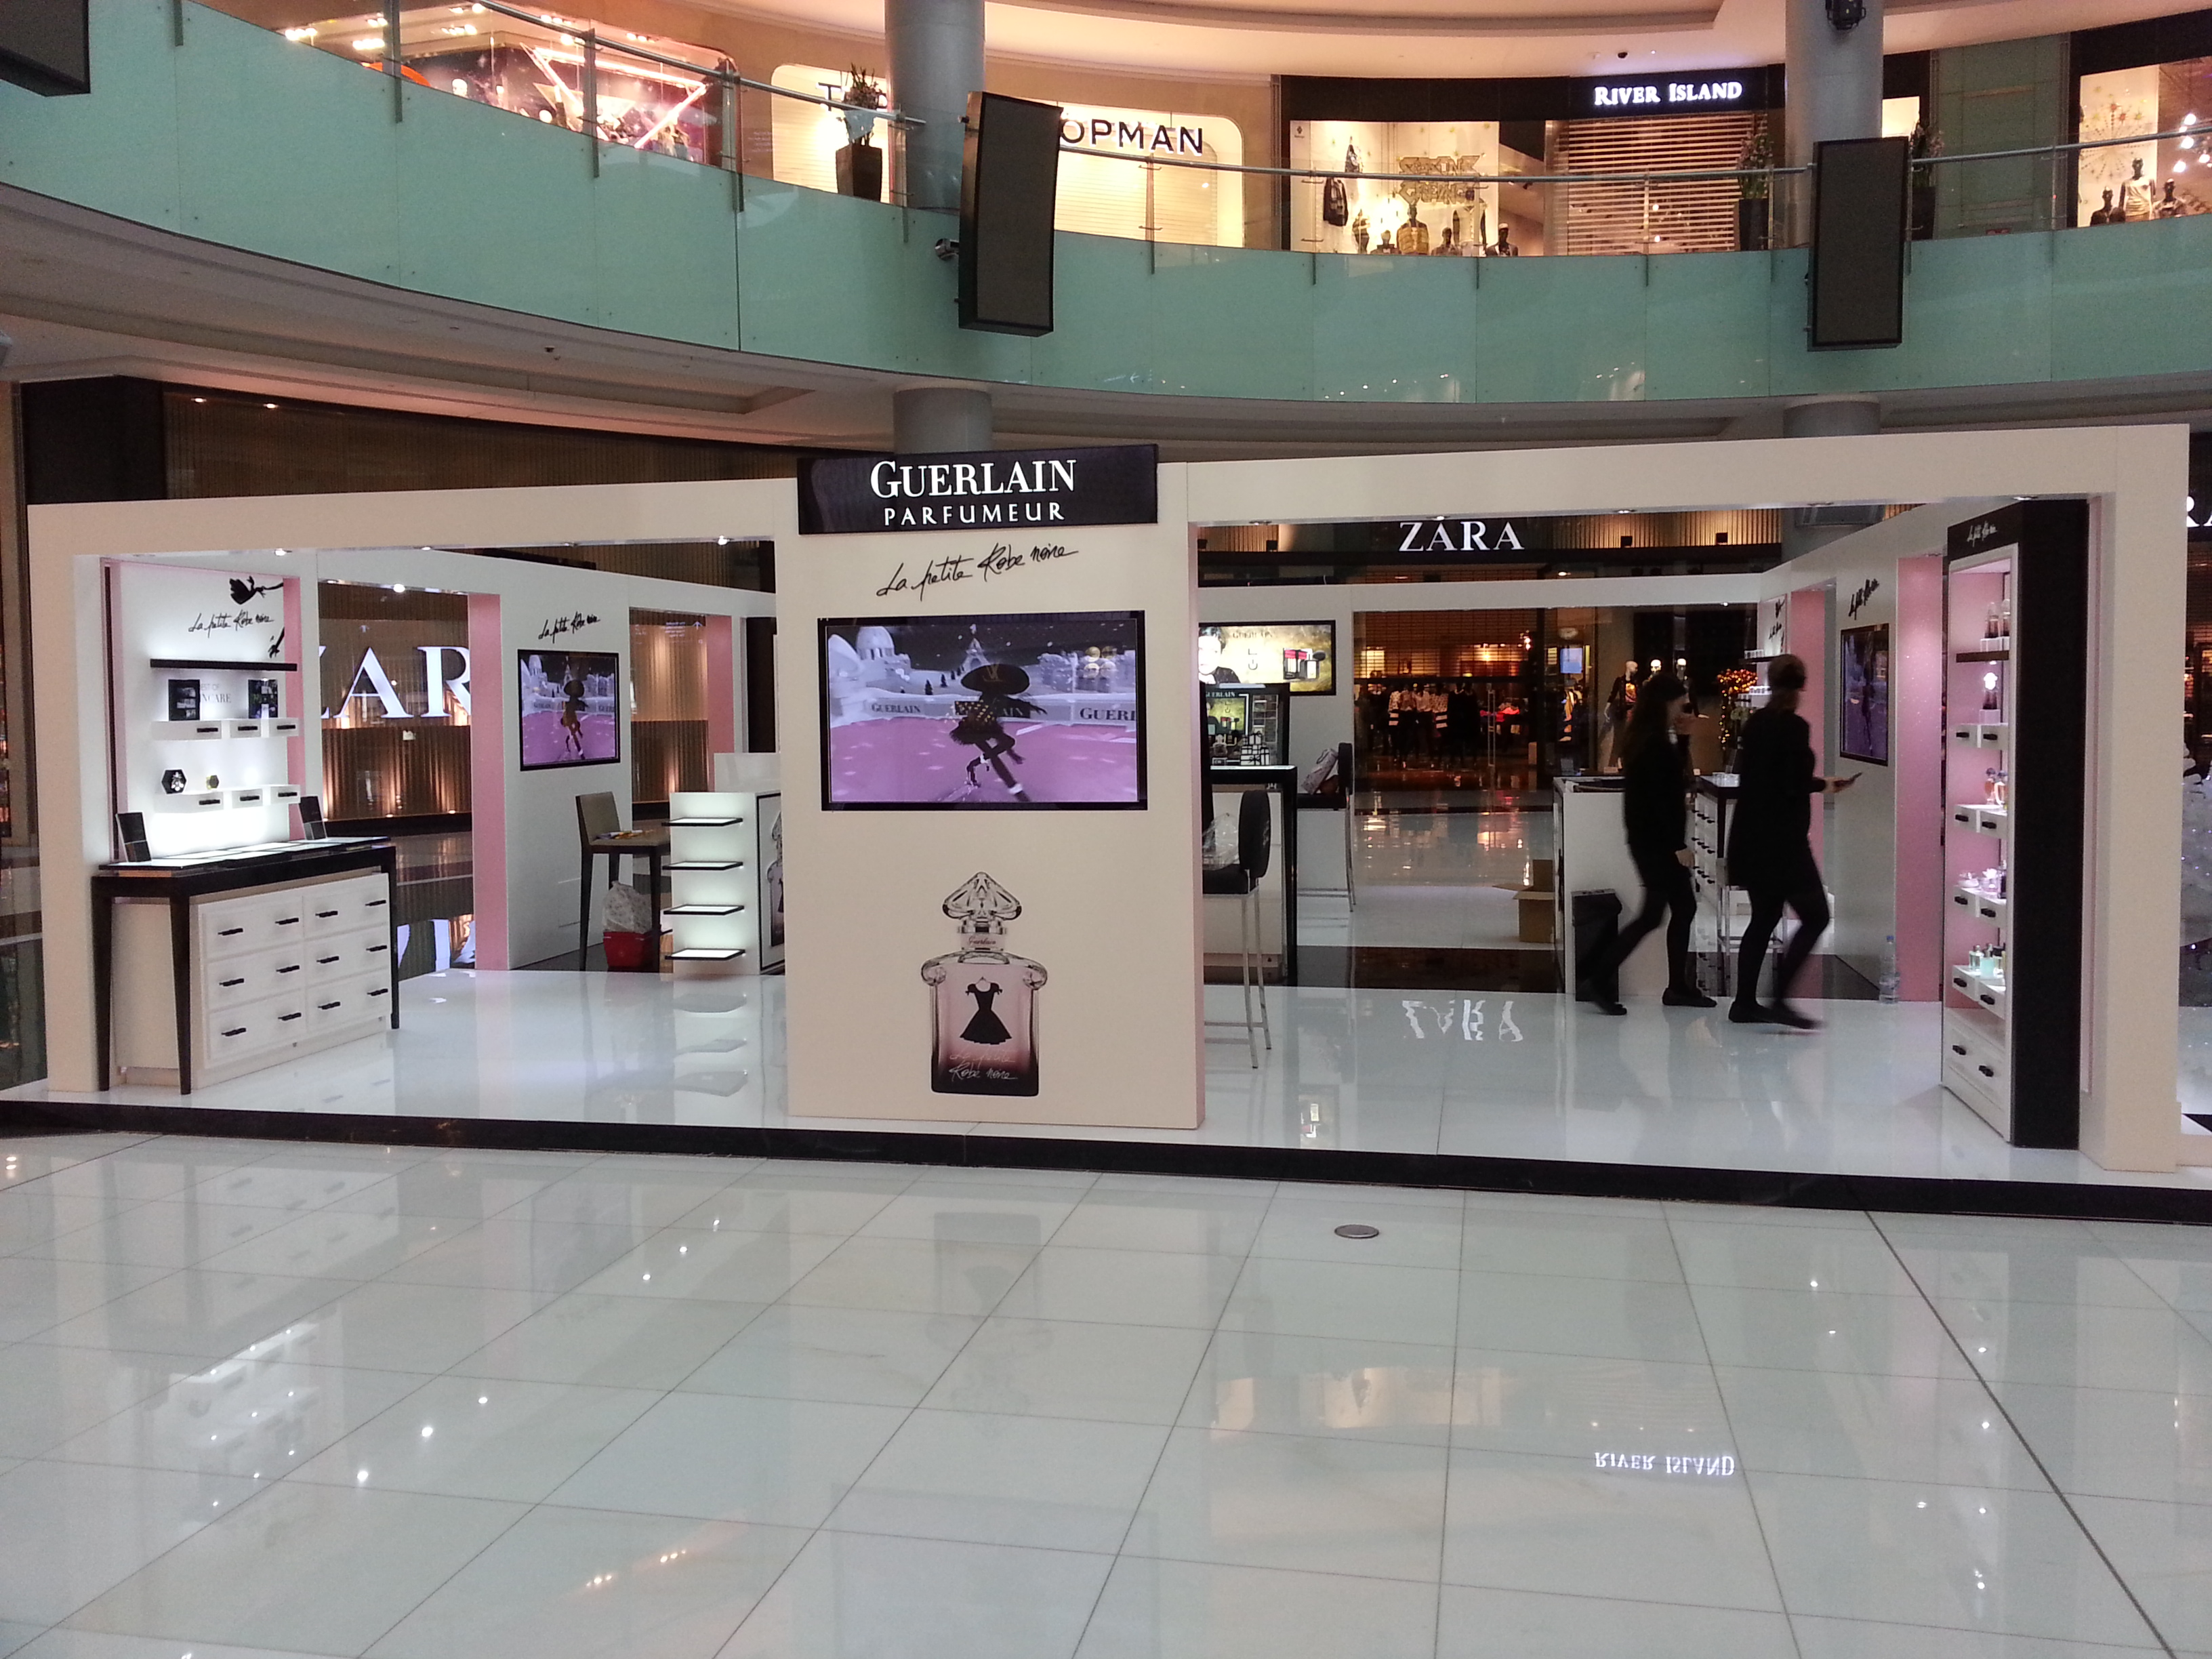 Guerlain Fashion Catwalk Dubai mall